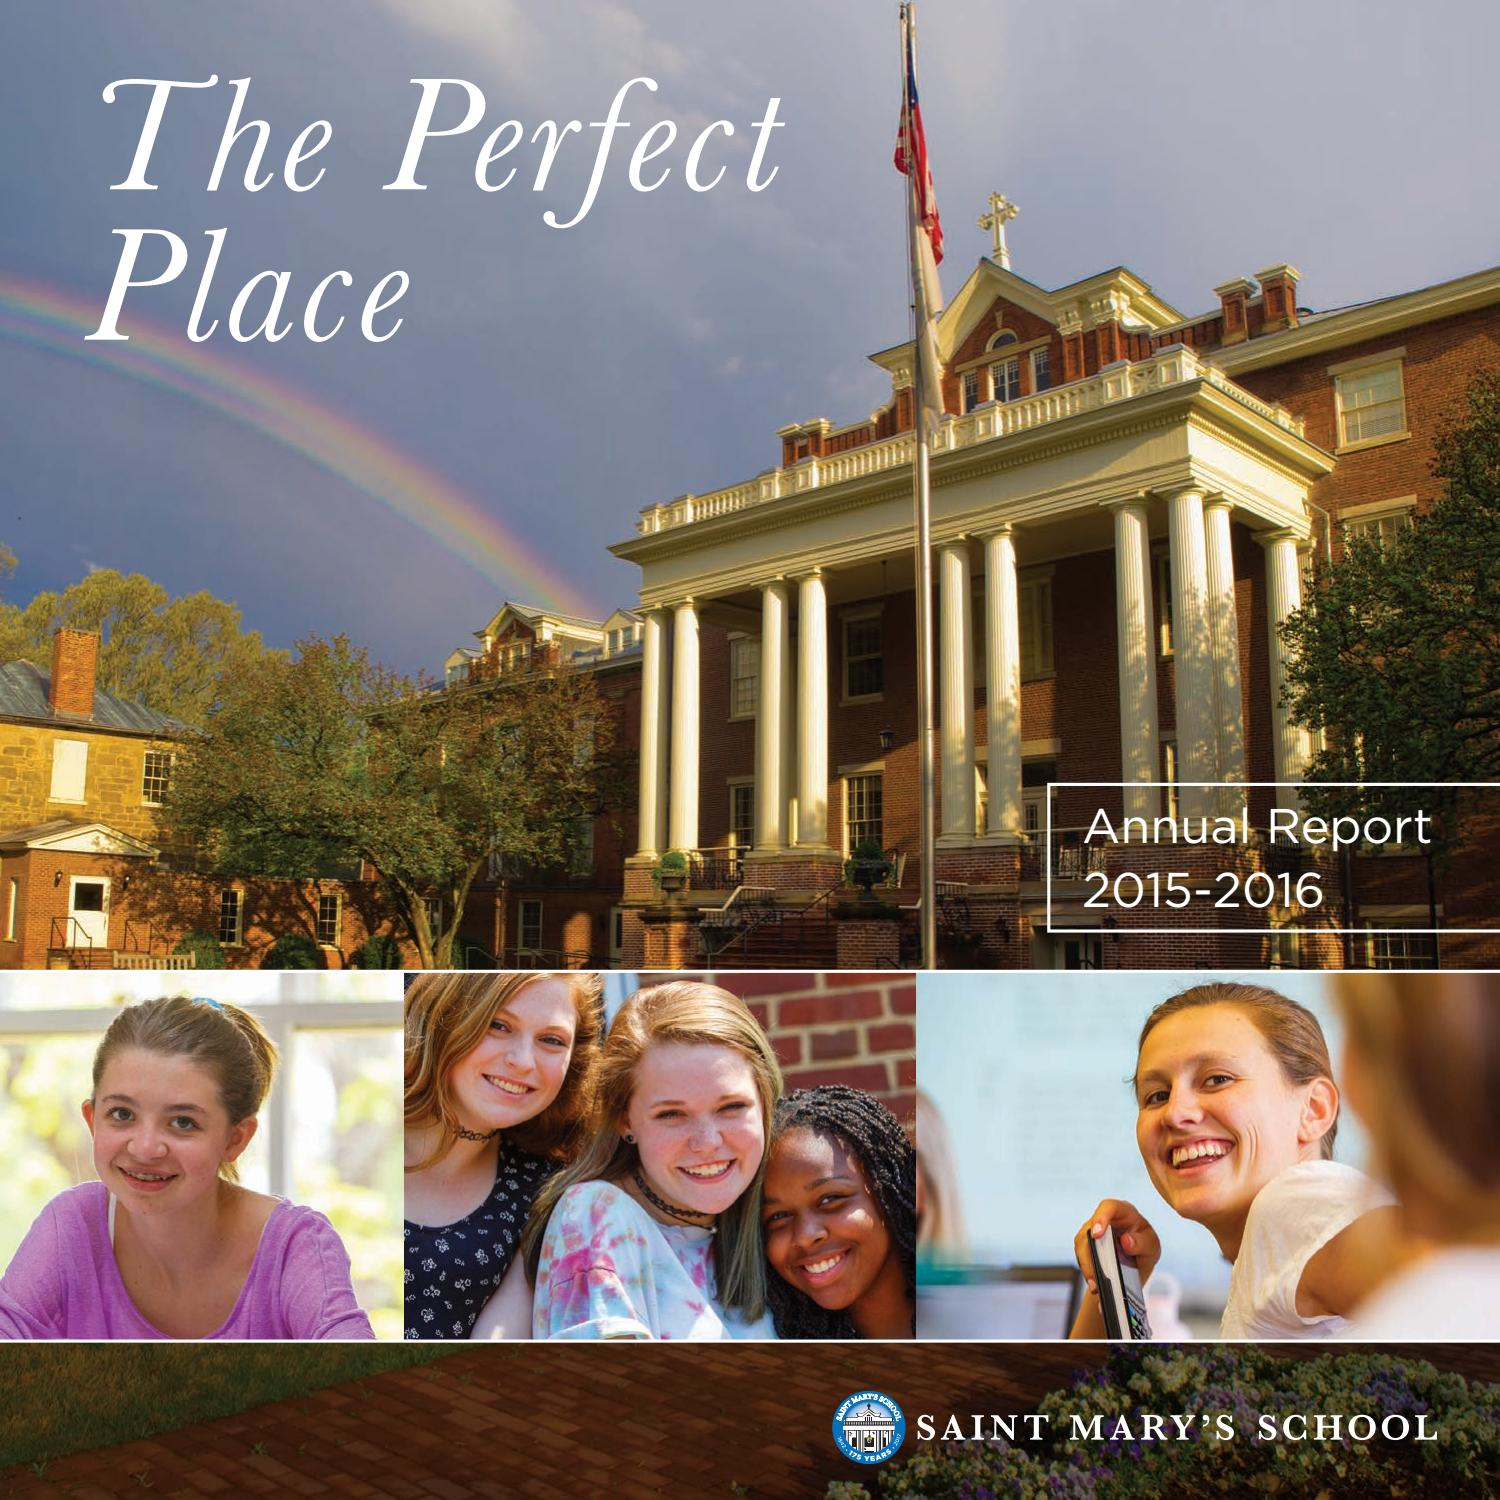 Saint Mary's School Annual Report | 2015-2016 by Saint